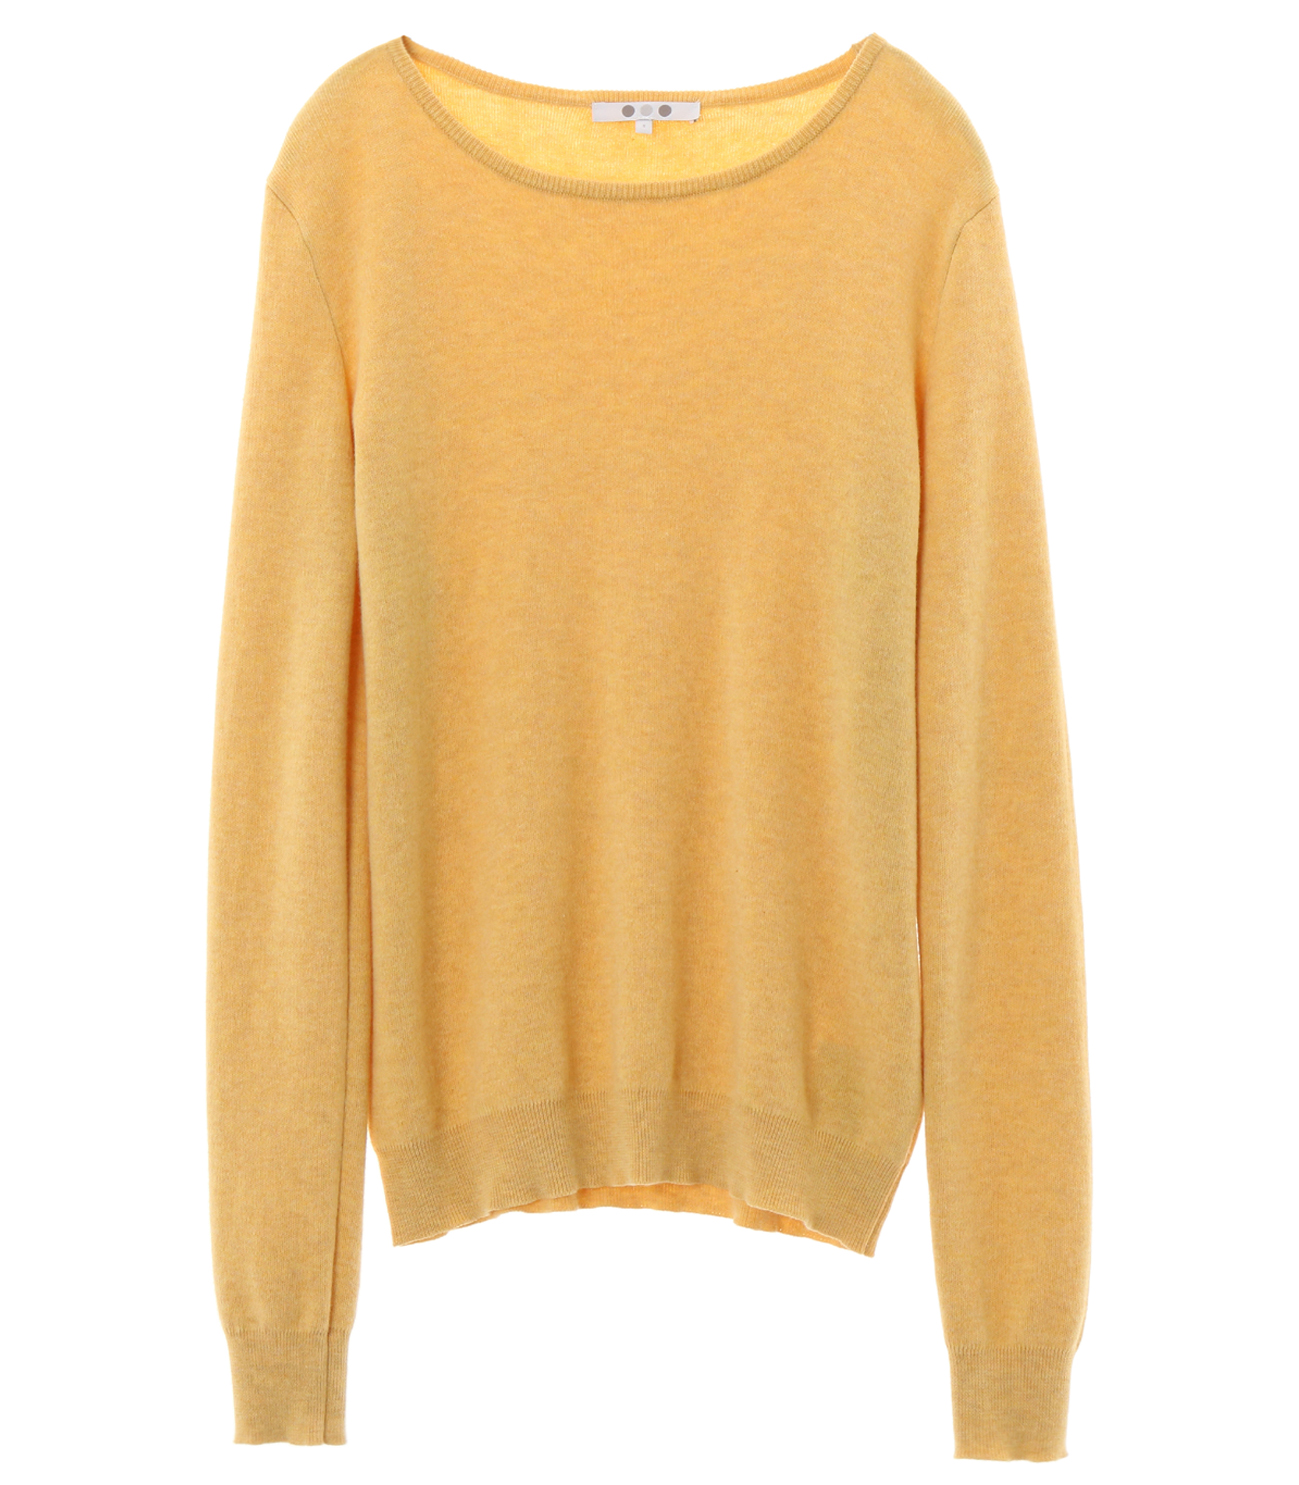 cotton melange l/s crew sweater 詳細画像 sunny 1